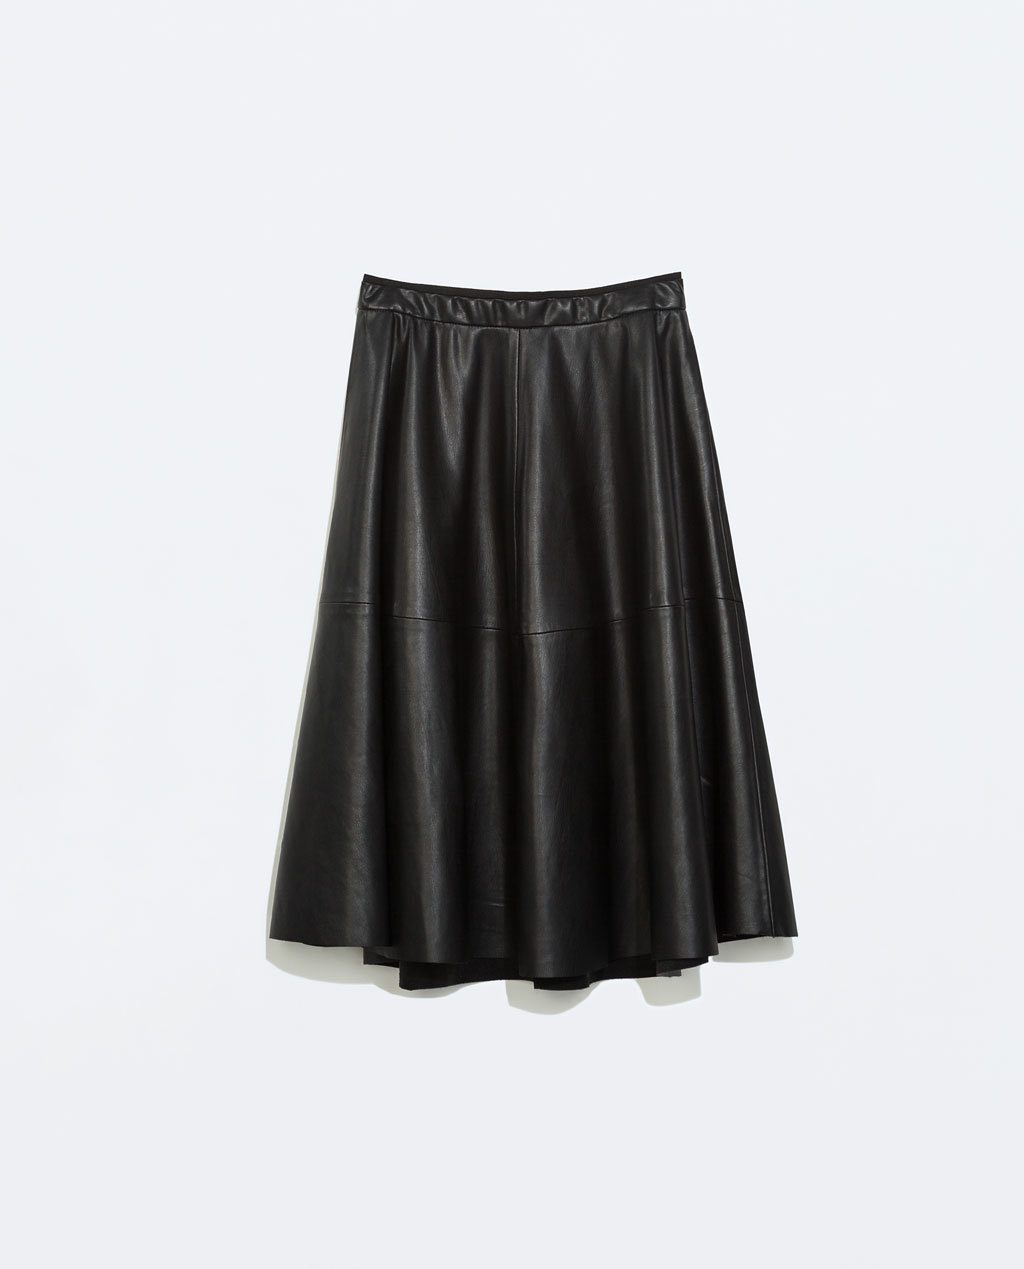 Faux Leather Flared Skirt - length: below the knee; pattern: plain; style: full/prom skirt; fit: loose/voluminous; waist detail: elasticated waist; waist: high rise; predominant colour: black; occasions: casual, evening, creative work; hip detail: soft pleats at hip/draping at hip/flared at hip; texture group: leather; pattern type: fabric; fibres: pvc/polyurethene - mix; season: a/w 2014